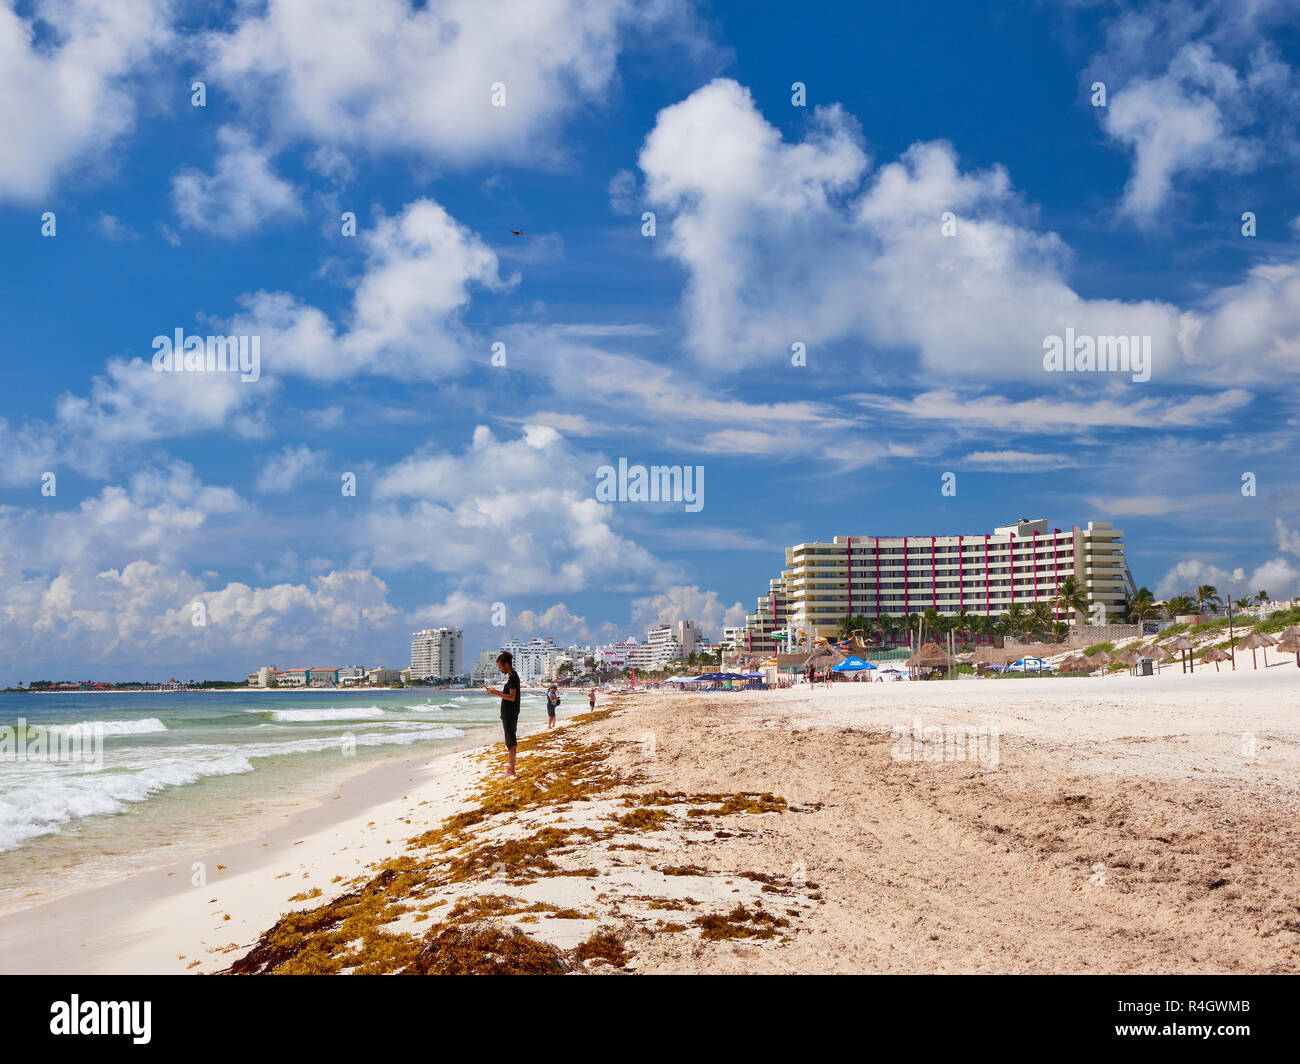 Young boy on Caribbean beach of Playa Delfines have fun with flying drone, Cancun, Mexico - Stock Image